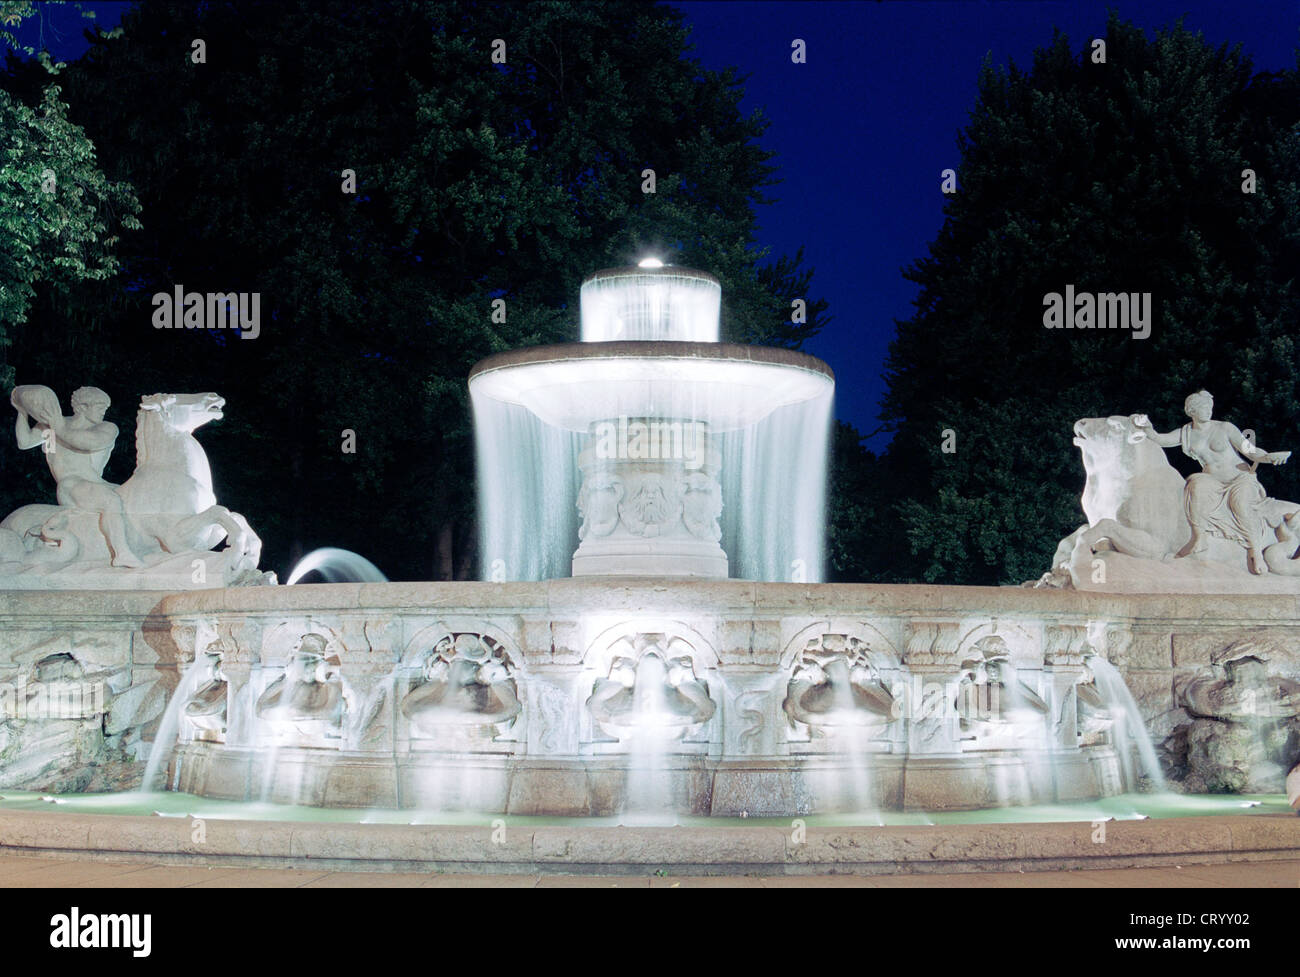 The Wittelsbach Fountain at Maximiliansplatz in Munich - Stock Image